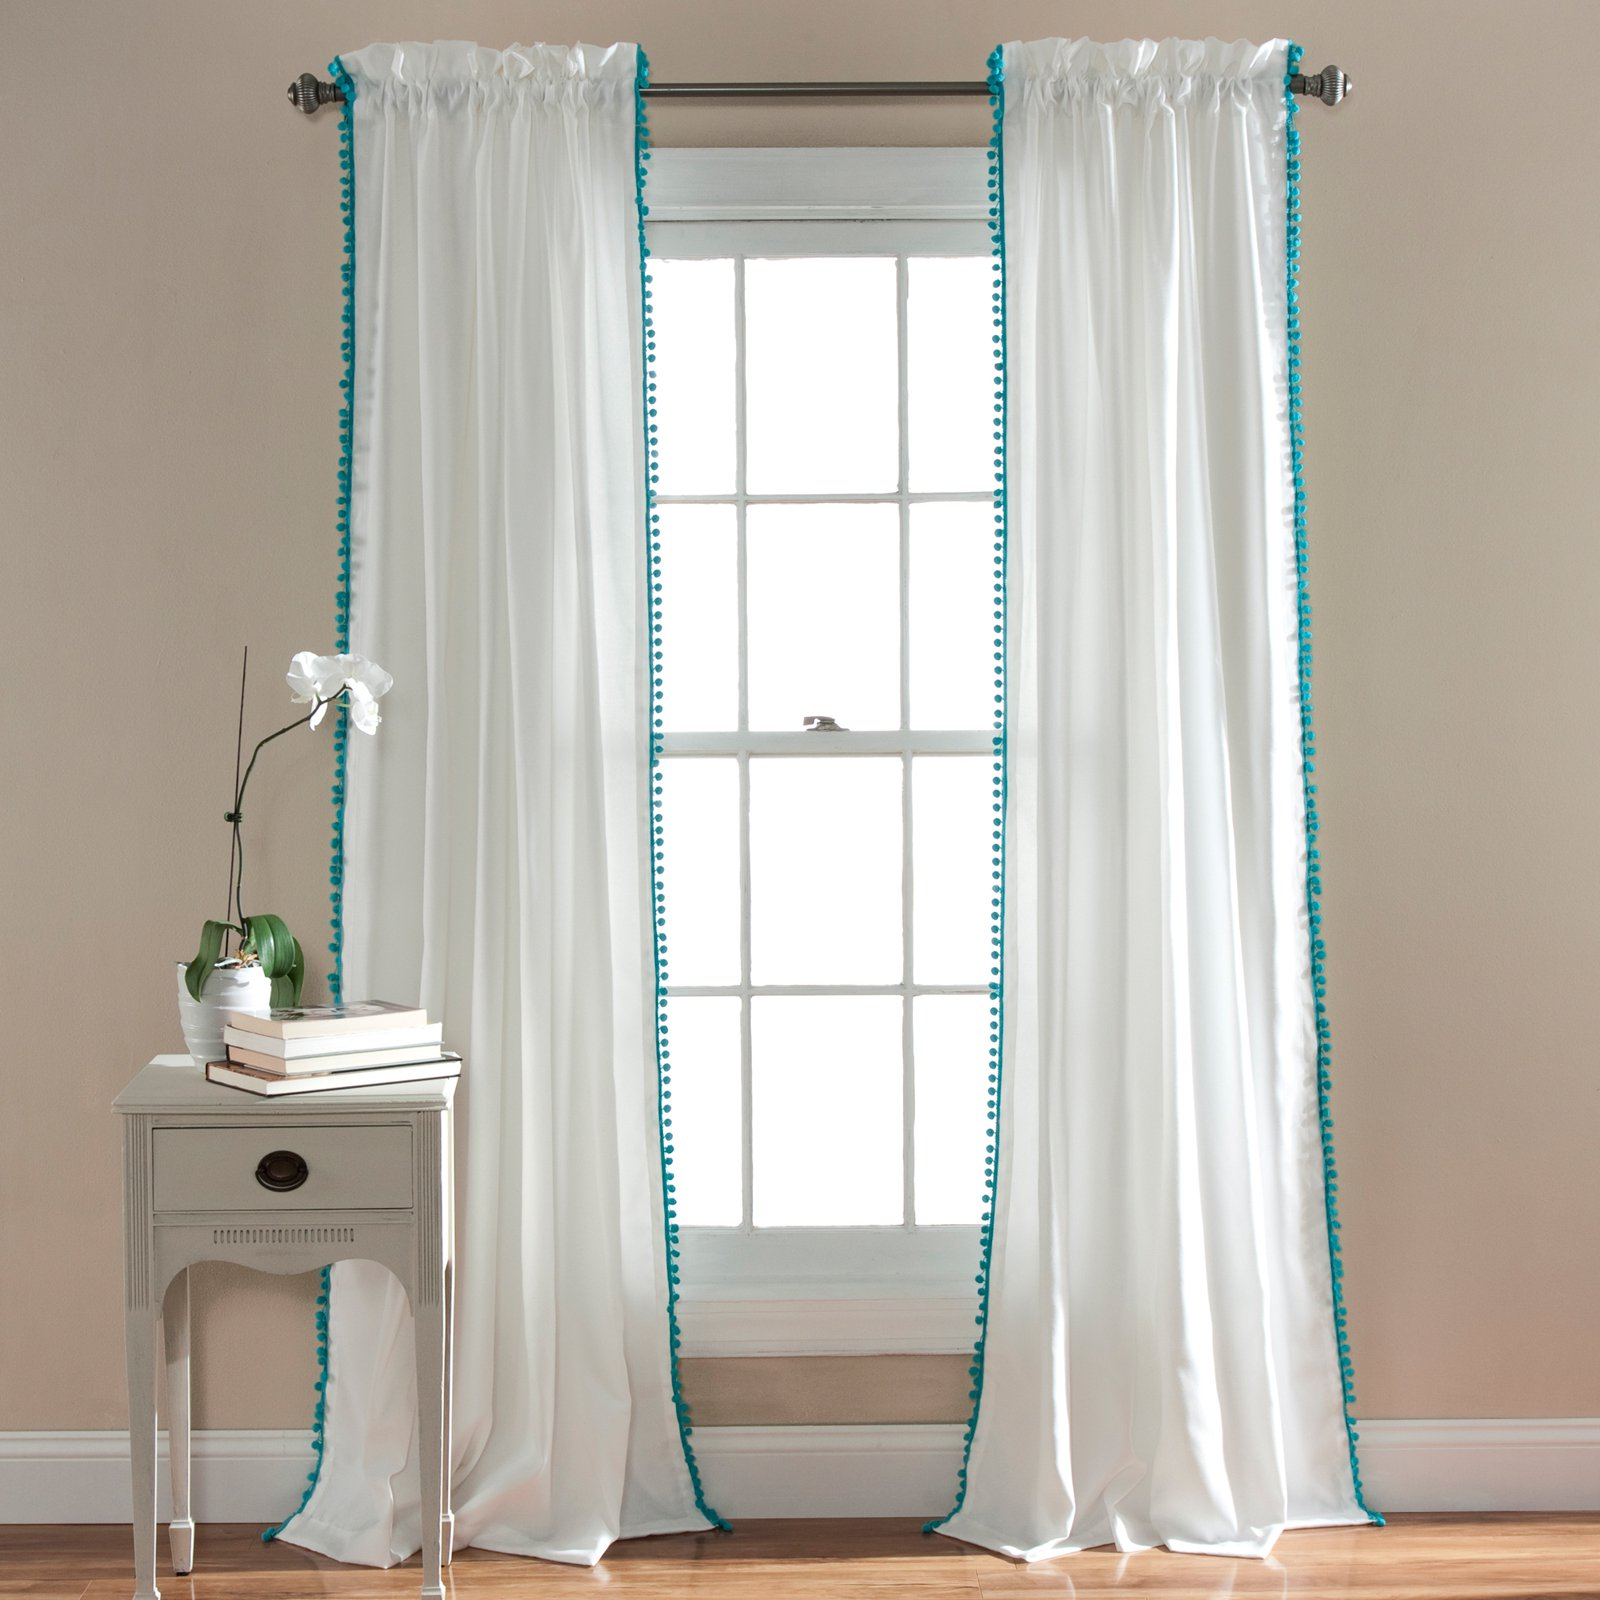 curtain designs drapes blue turquoise new grommet ocean sheer with top dusty sea warm curtains pair come valances affordable scarf of color products window dark slate home